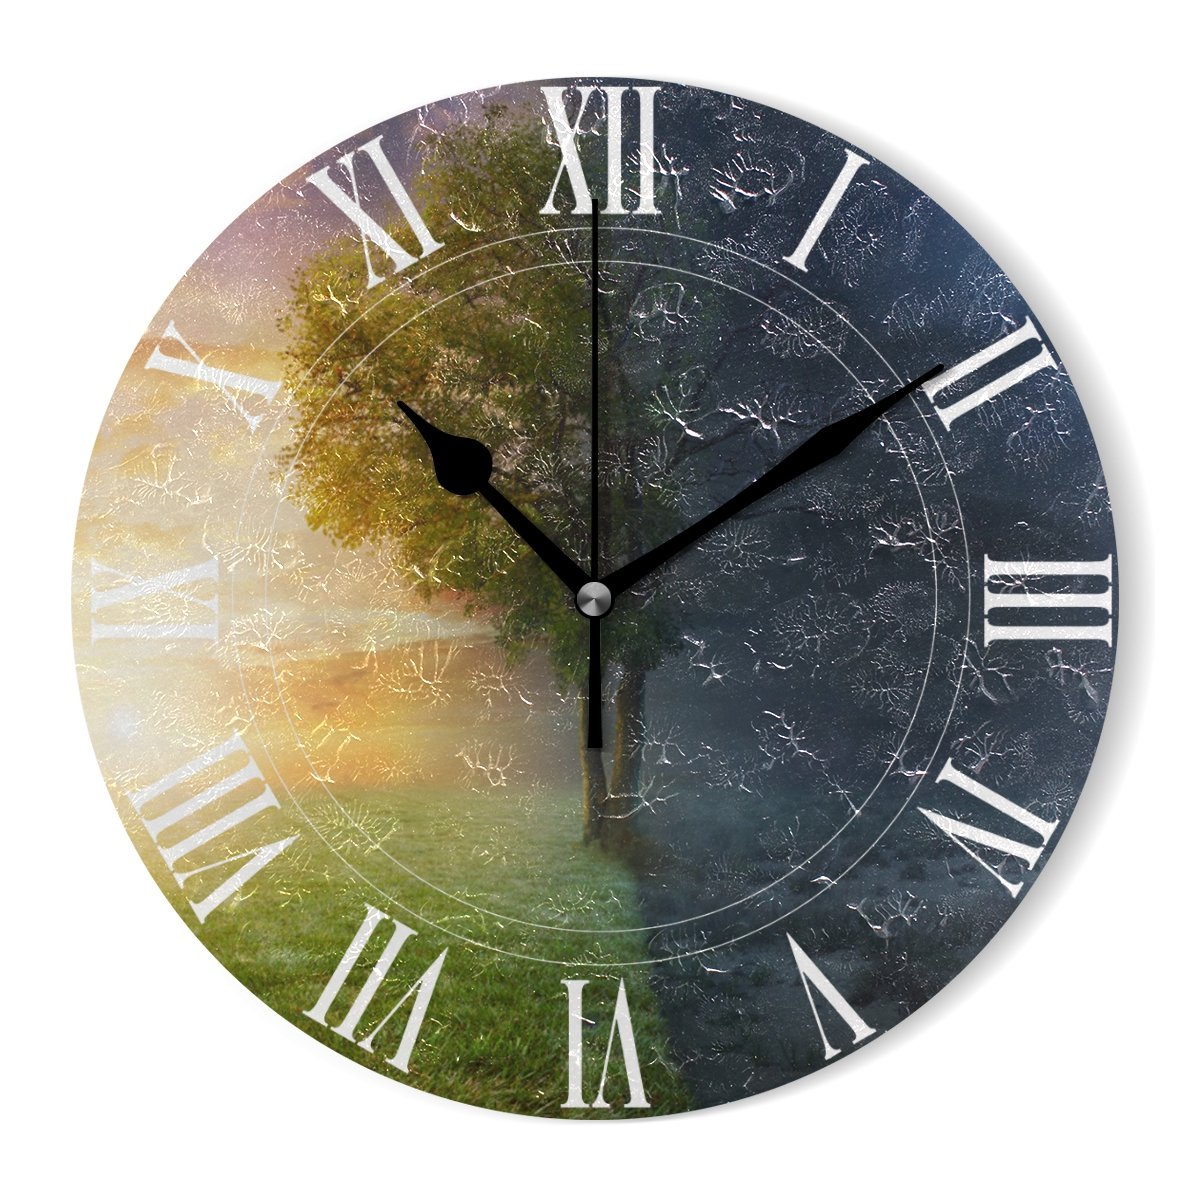 WellLee Night Day Landscape Life Tree Clock Acrylic Painted Silent Non-Ticking Round Wall Clock Home Art Bedroom Living Dorm Room Decoration by WellLee (Image #3)